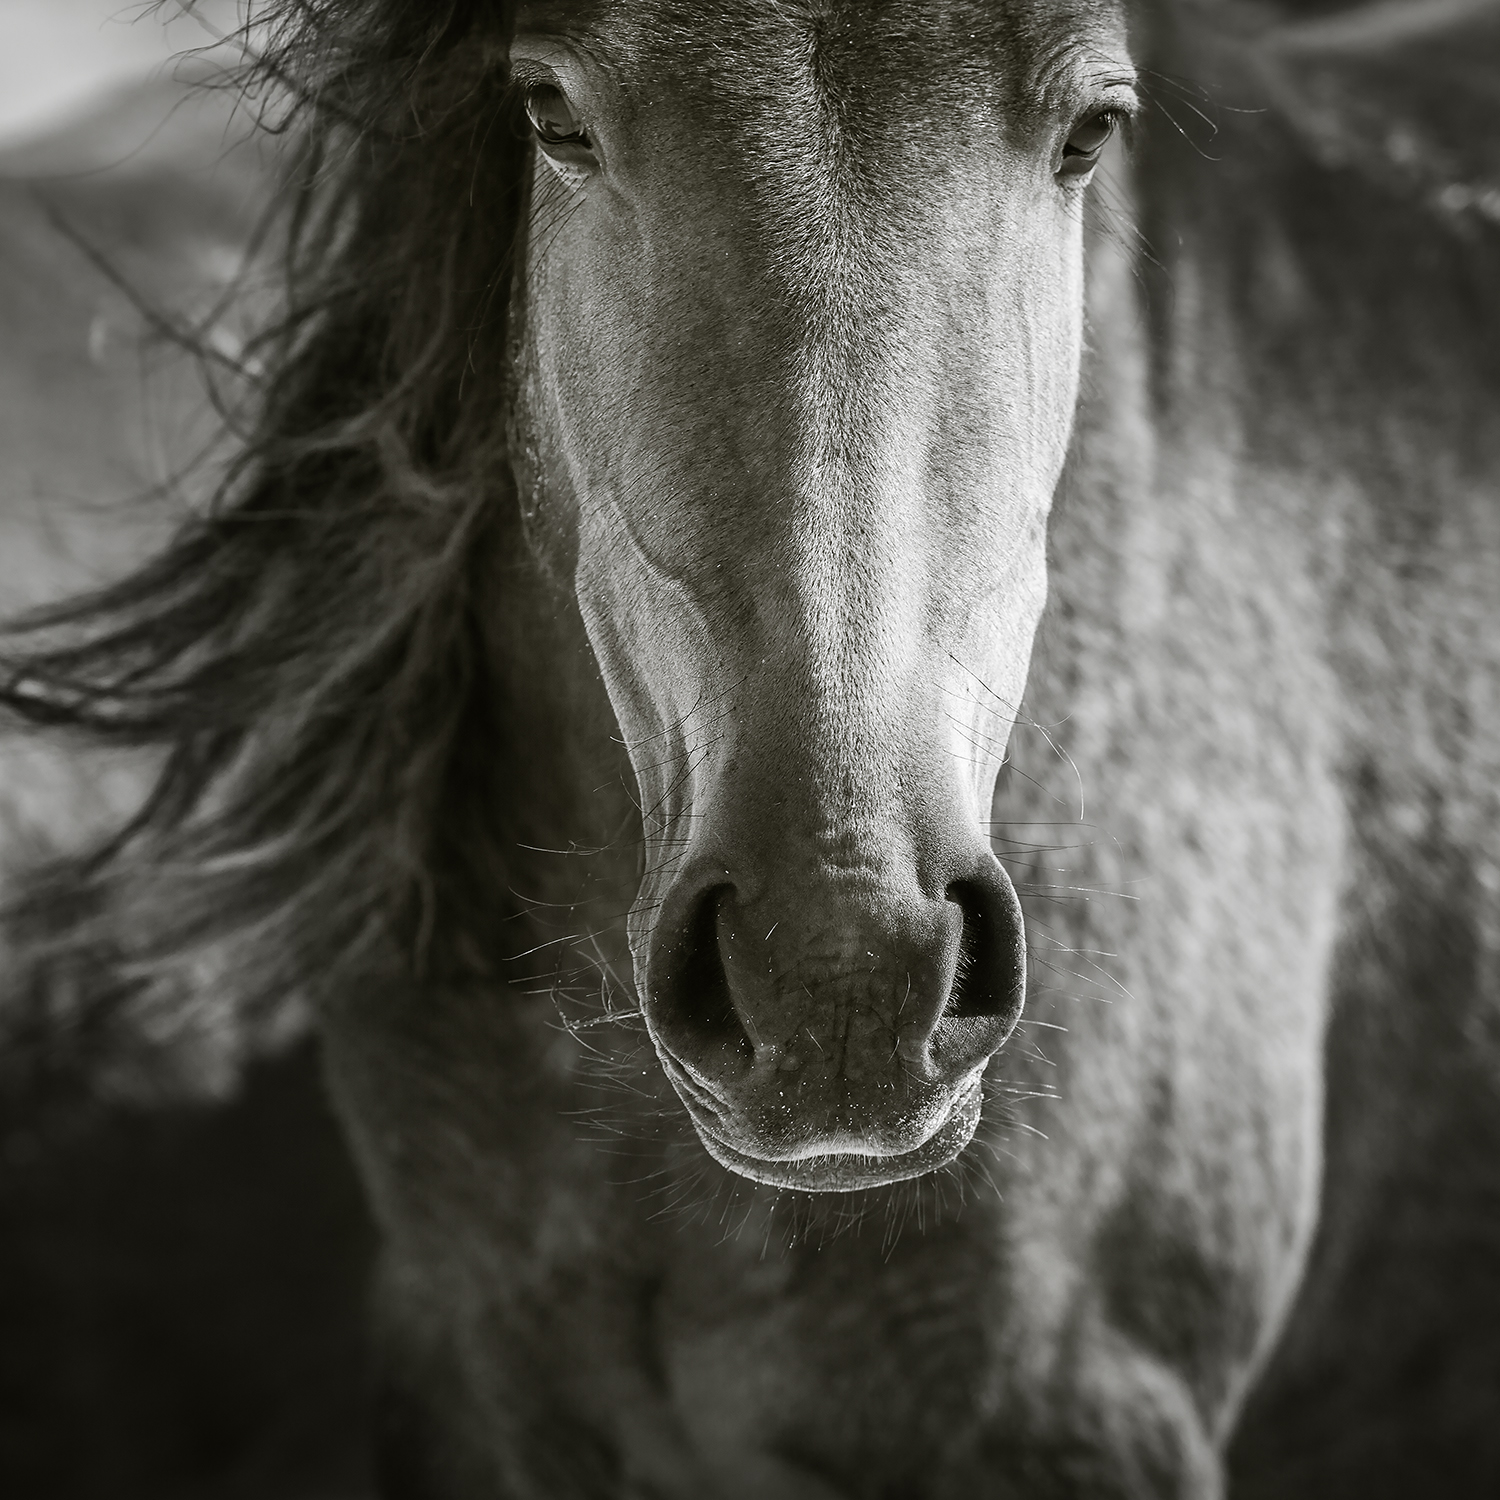 BORN TO BE WILD - Sable Island 2015